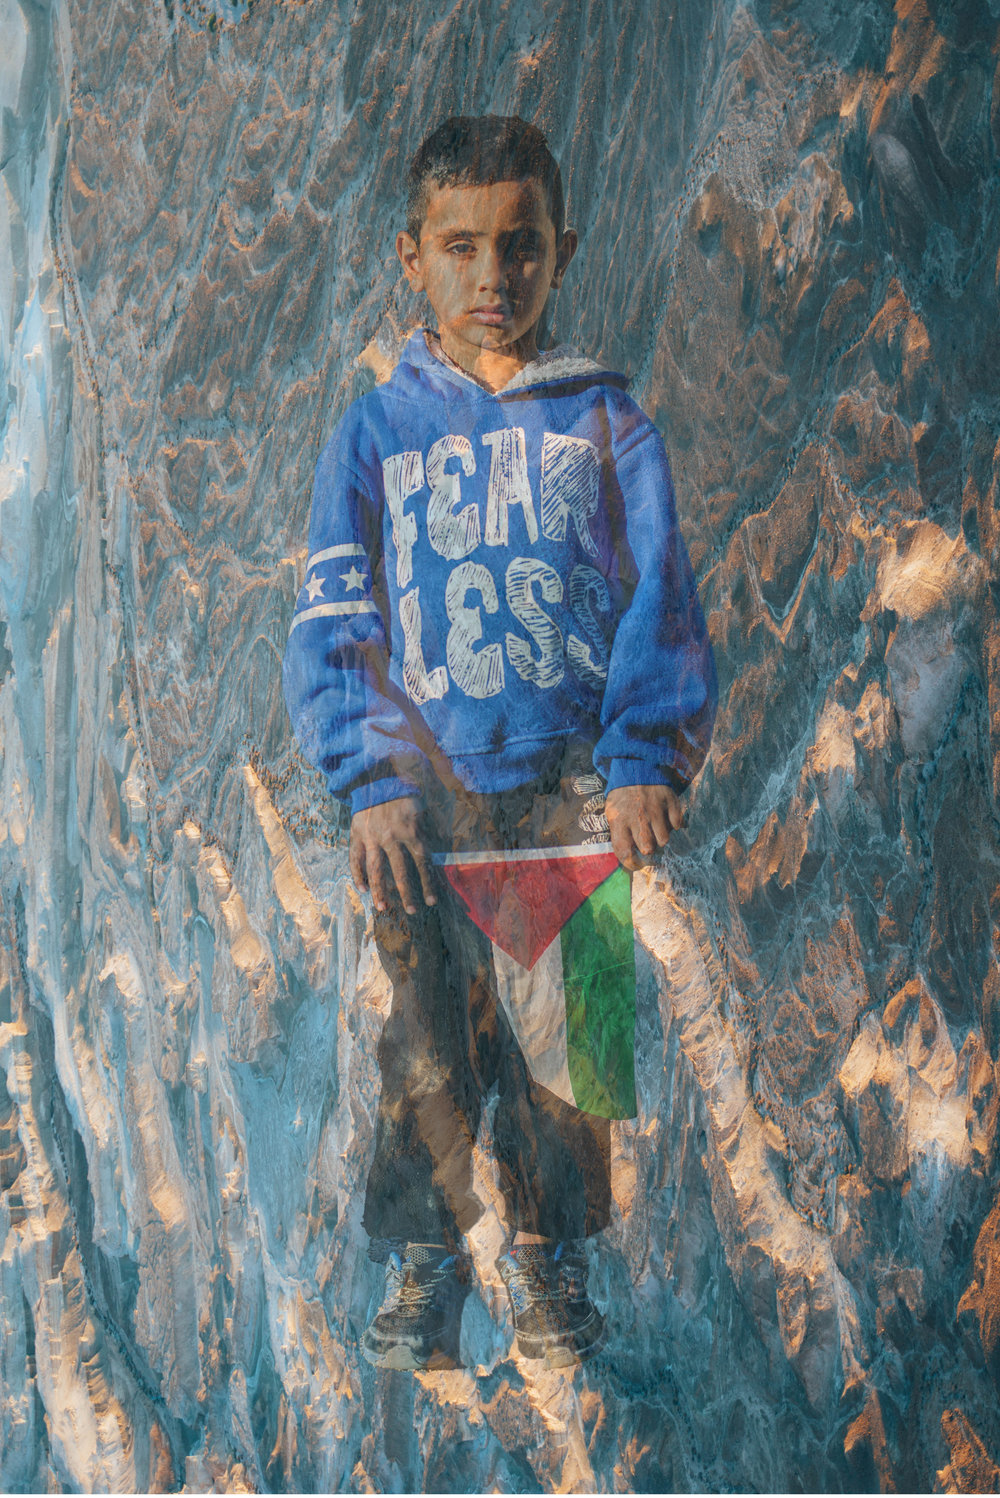 A boy holds a Palestinian flag with Masada superimposed on his portrait.